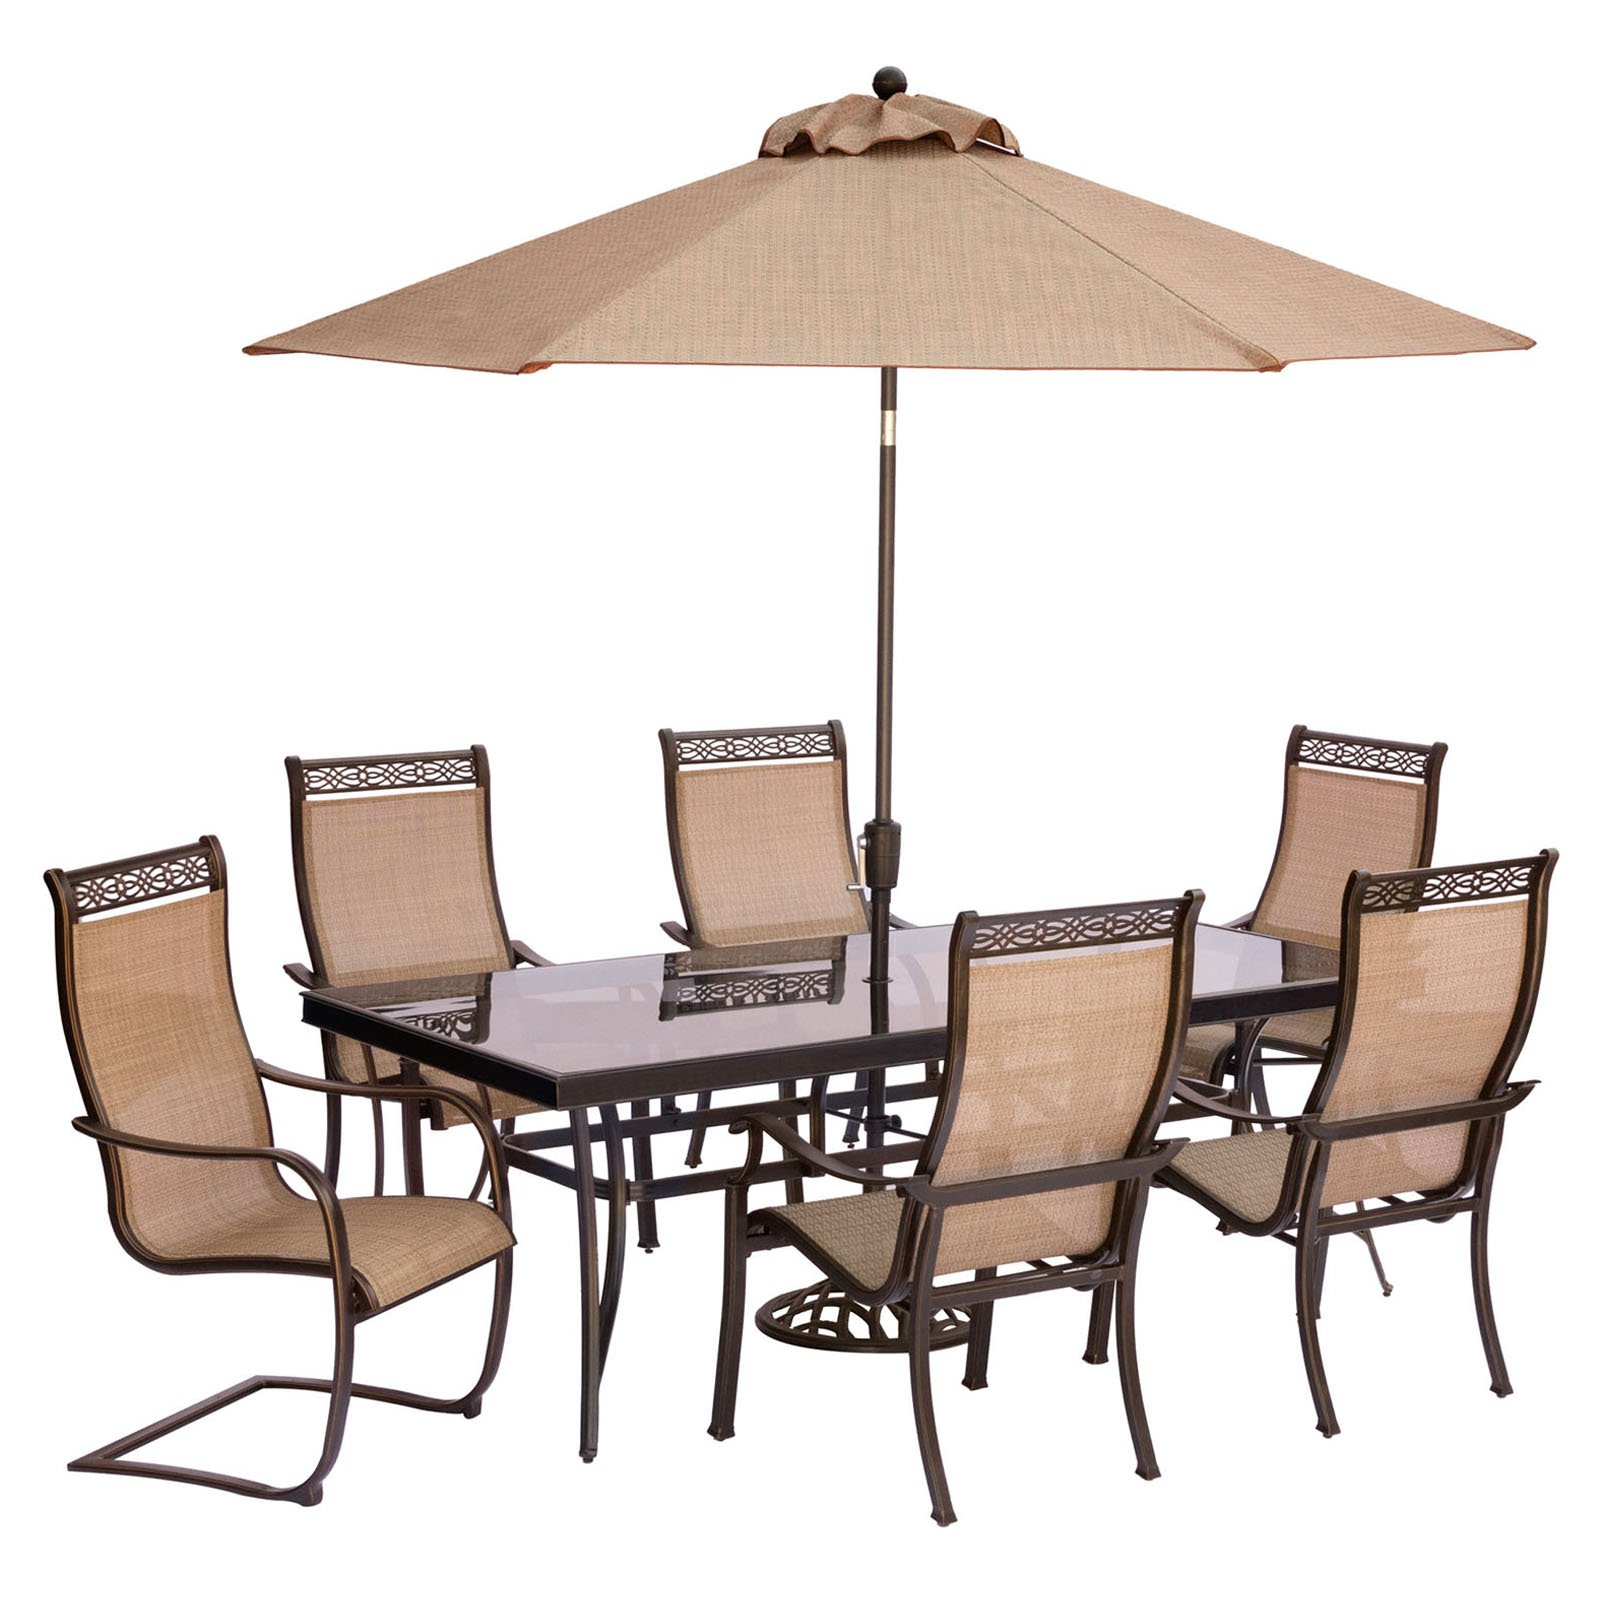 Hanover outdoor monaco 7 piece sling dining set with 42 x 84 glass top table 4 stationary chairs and 2 c spring chairs plus umbrella with stand cedar